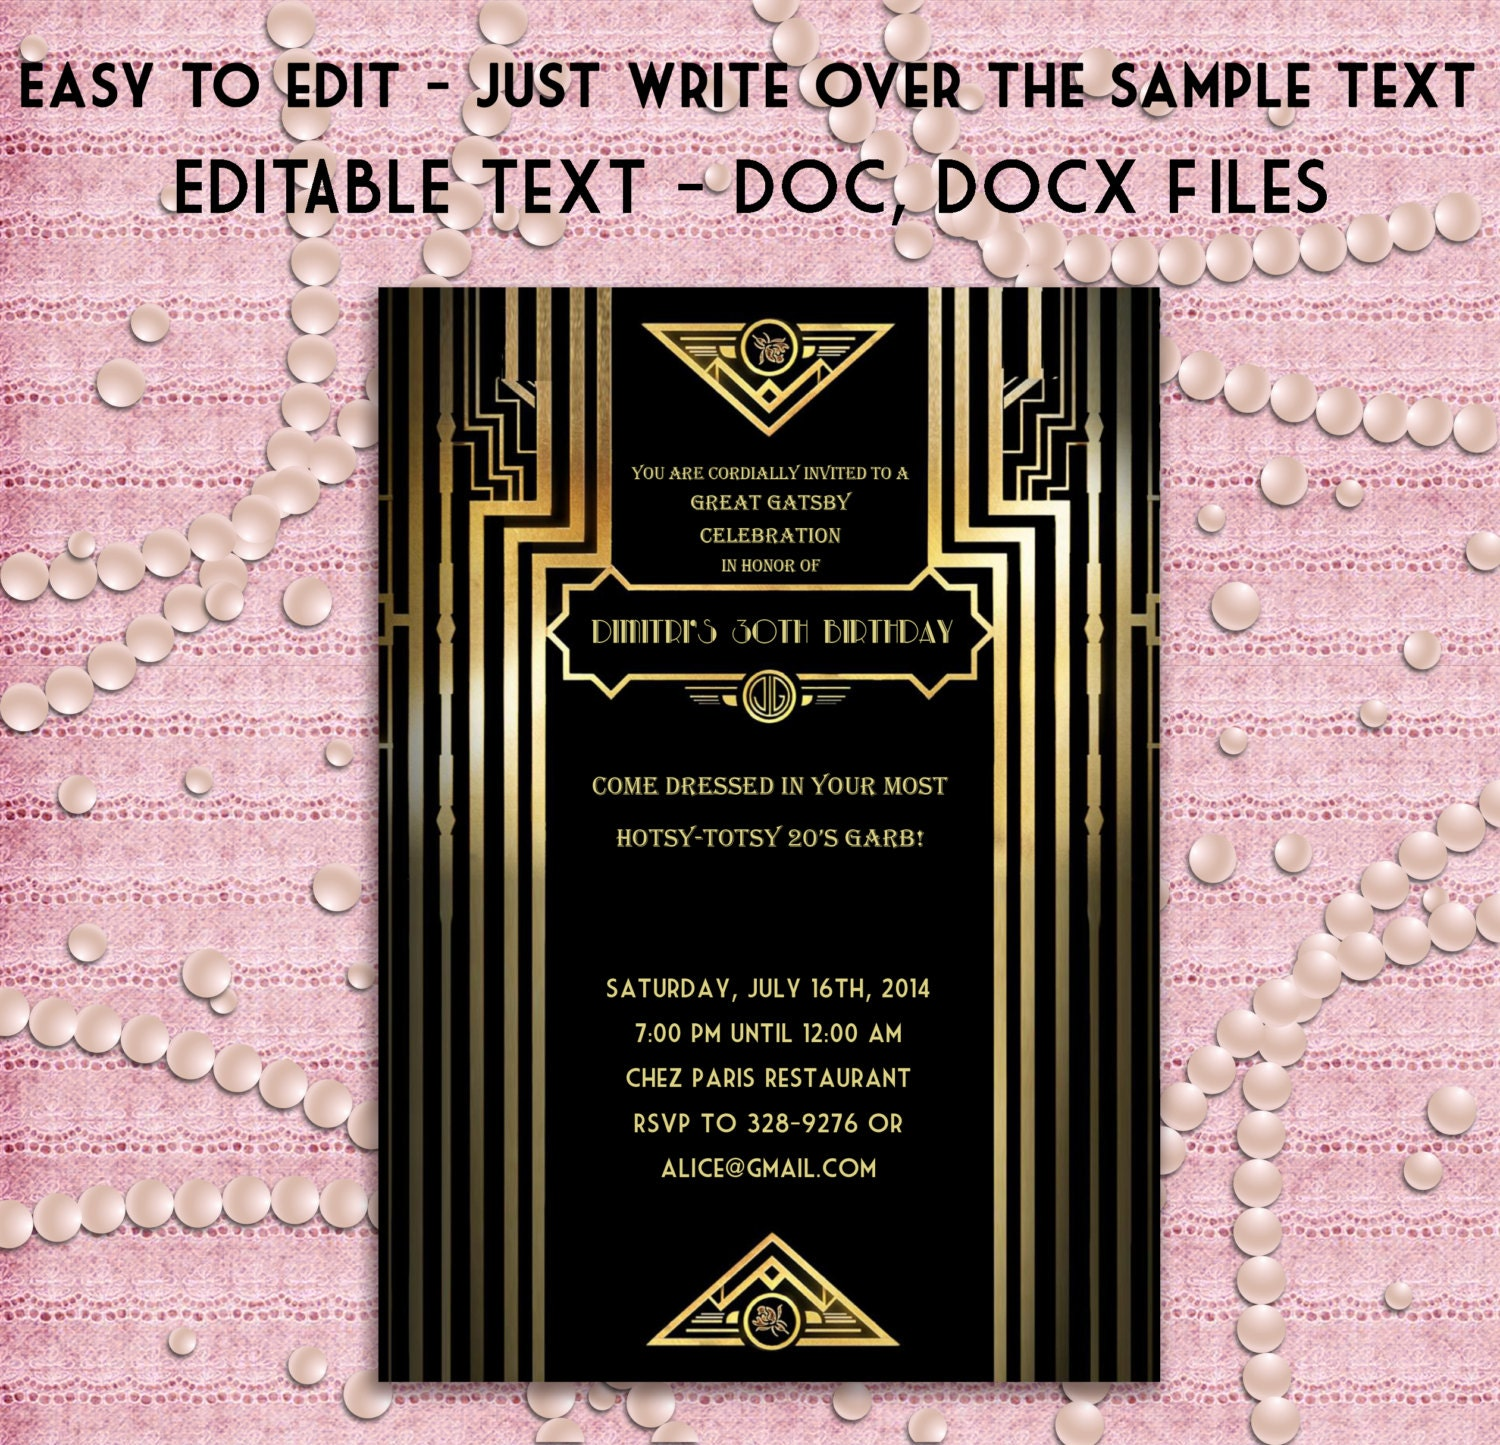 Prom invitation templates pasoevolist great gatsby style art deco party invitation prom birthday stopboris Image collections